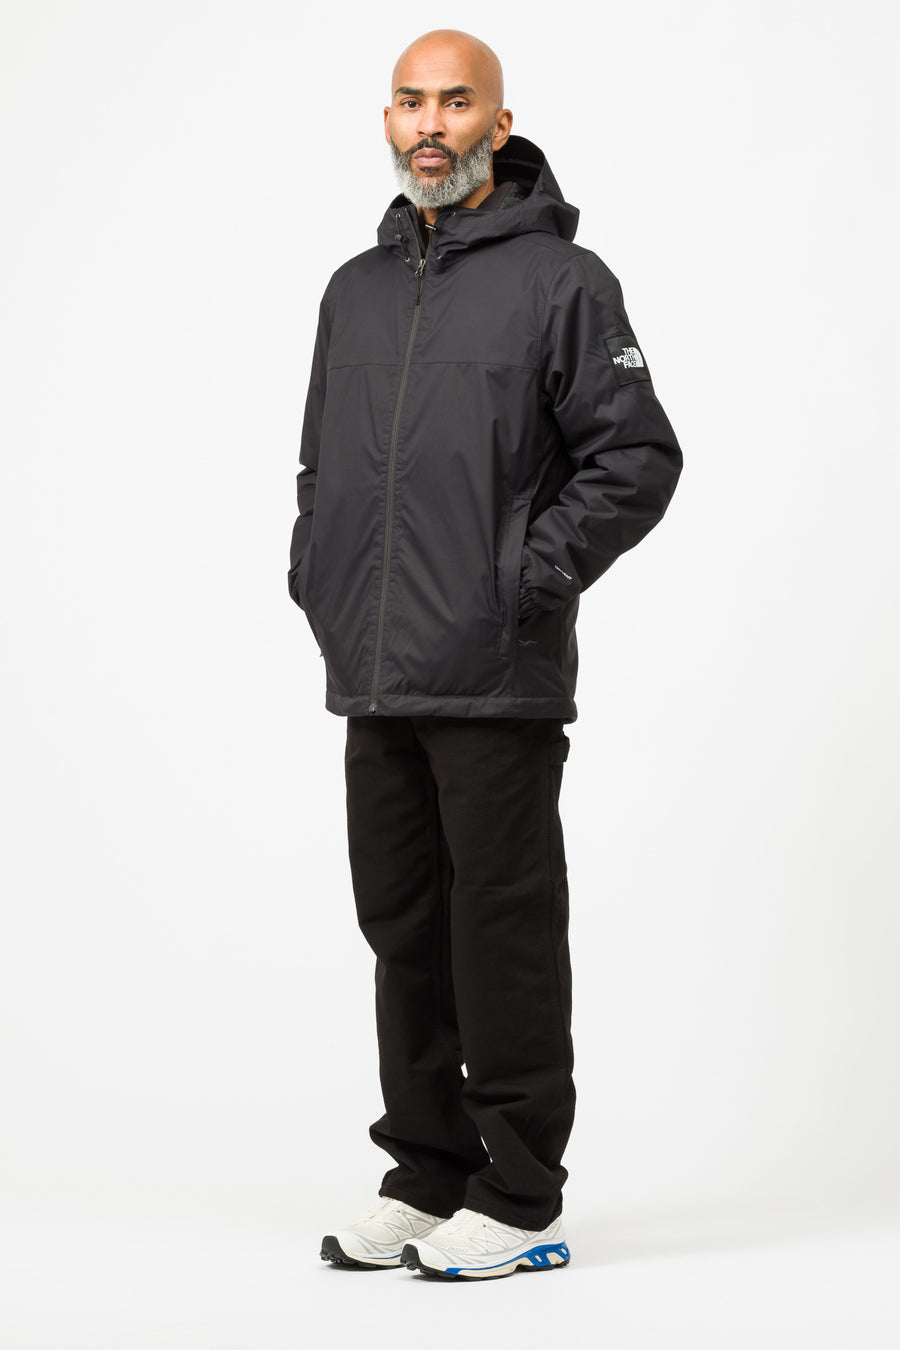 The North Face Mountain Insulated Jacket in Black - Notre